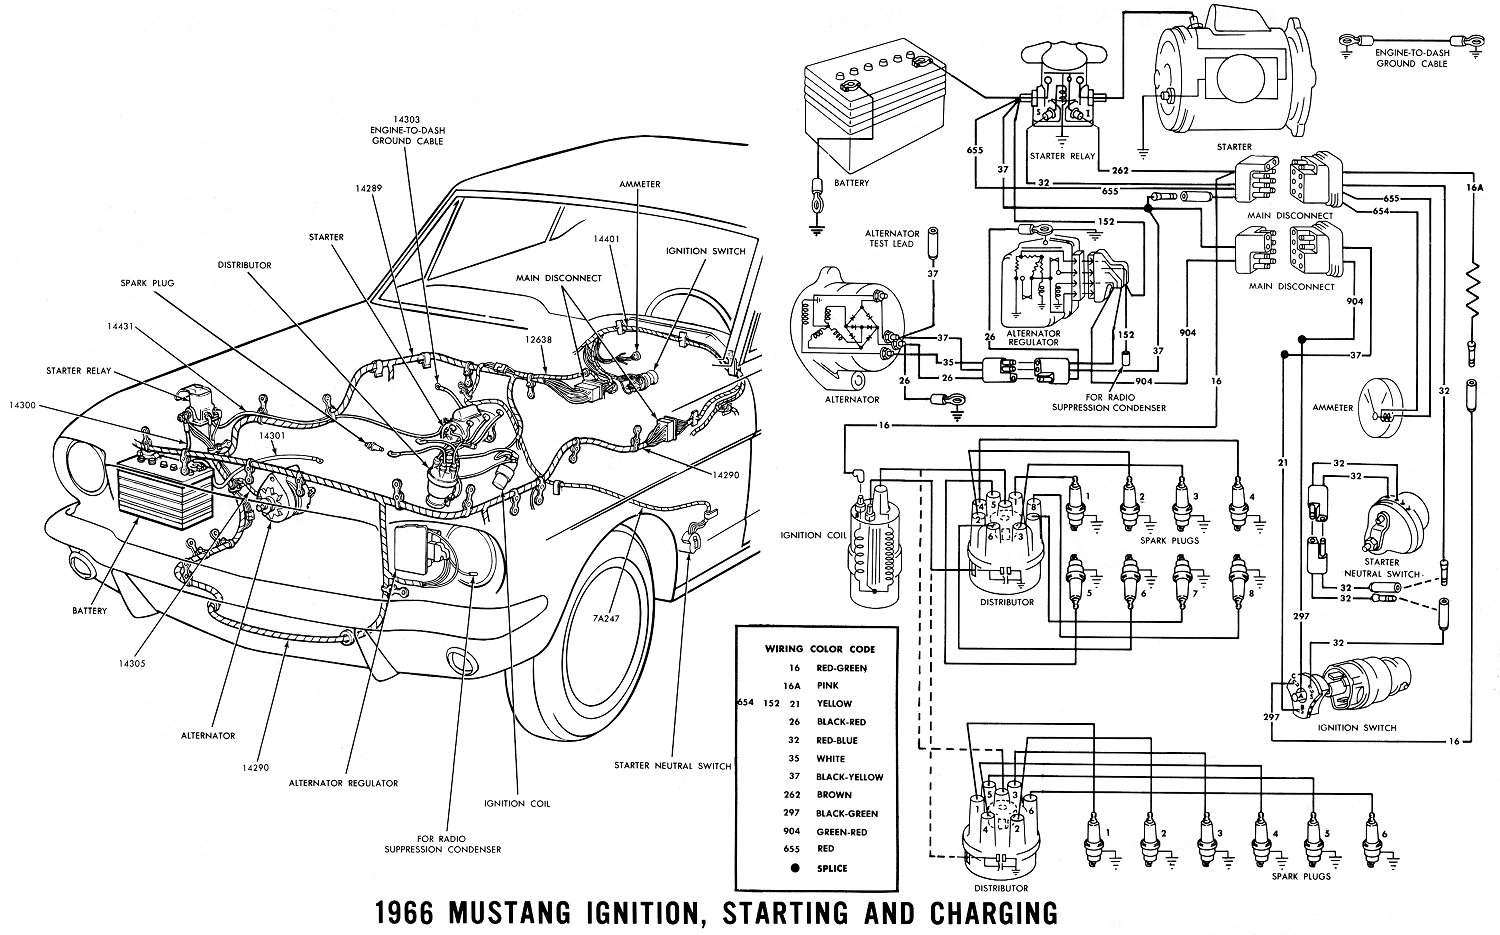 66ignit 1966 mustang wiring diagrams average joe restoration 1965 mustang engine wiring harness at virtualis.co